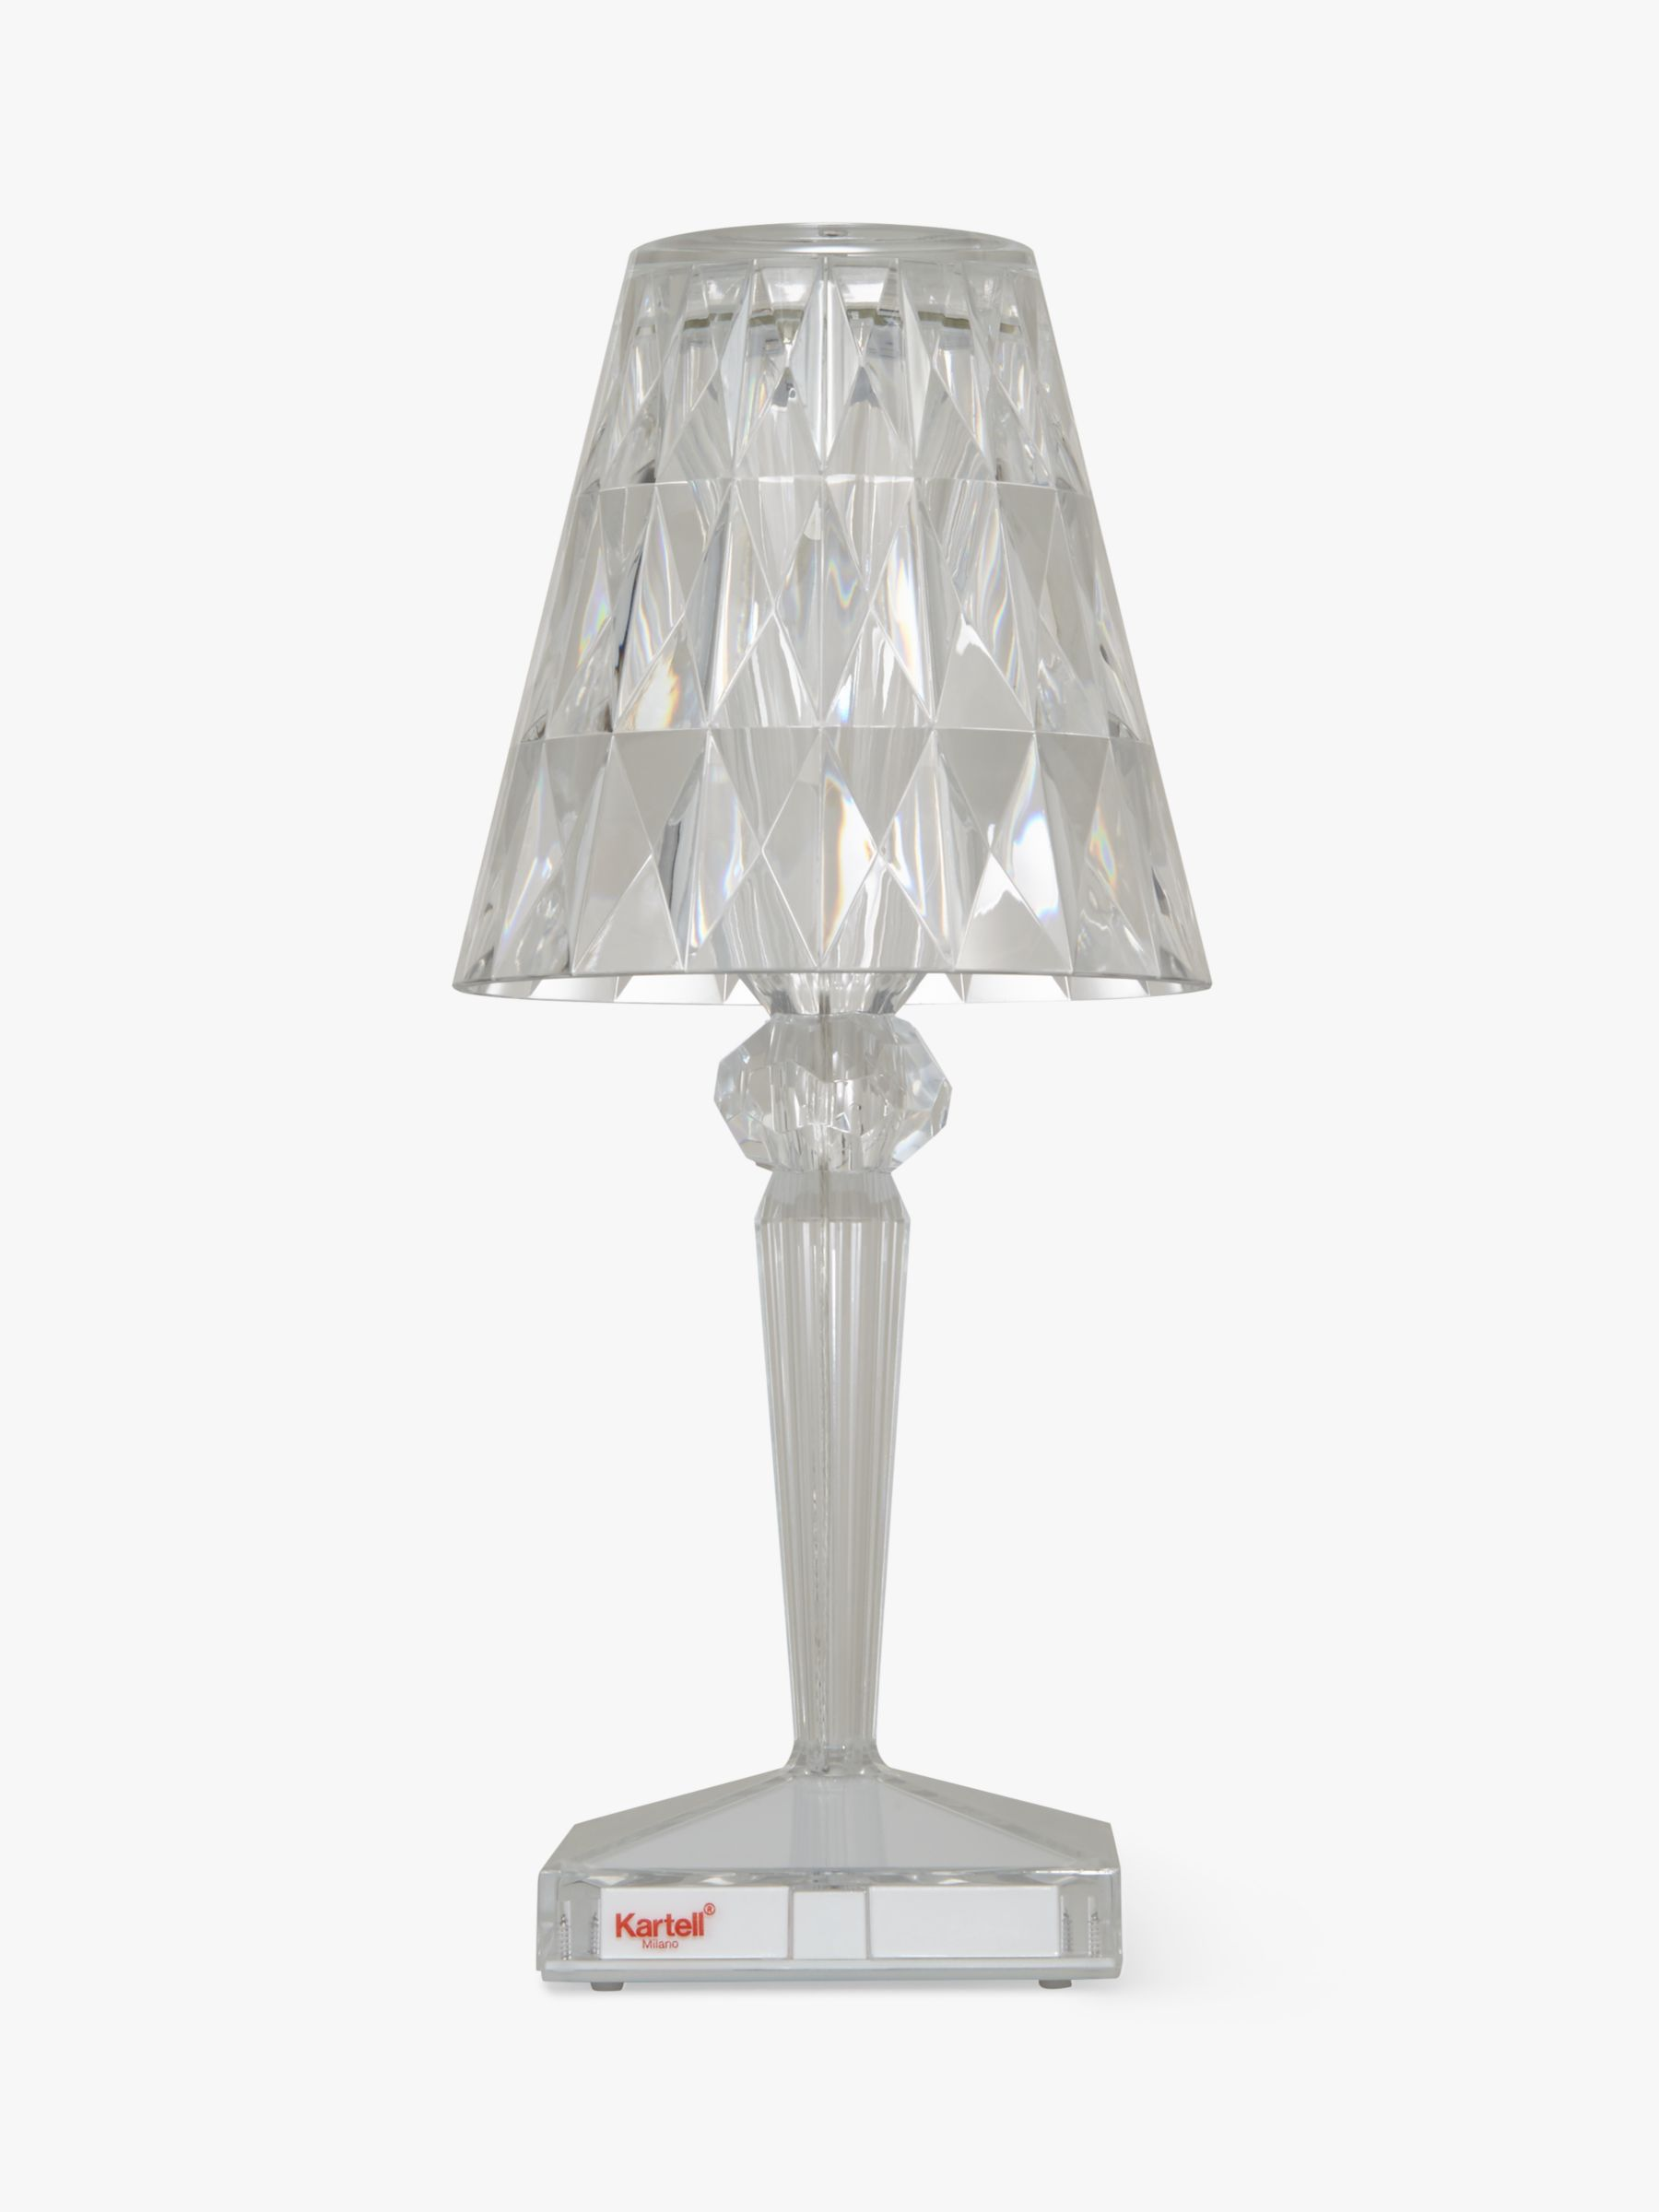 Picture of: Kartell Battery Table Lamp At John Lewis Partners